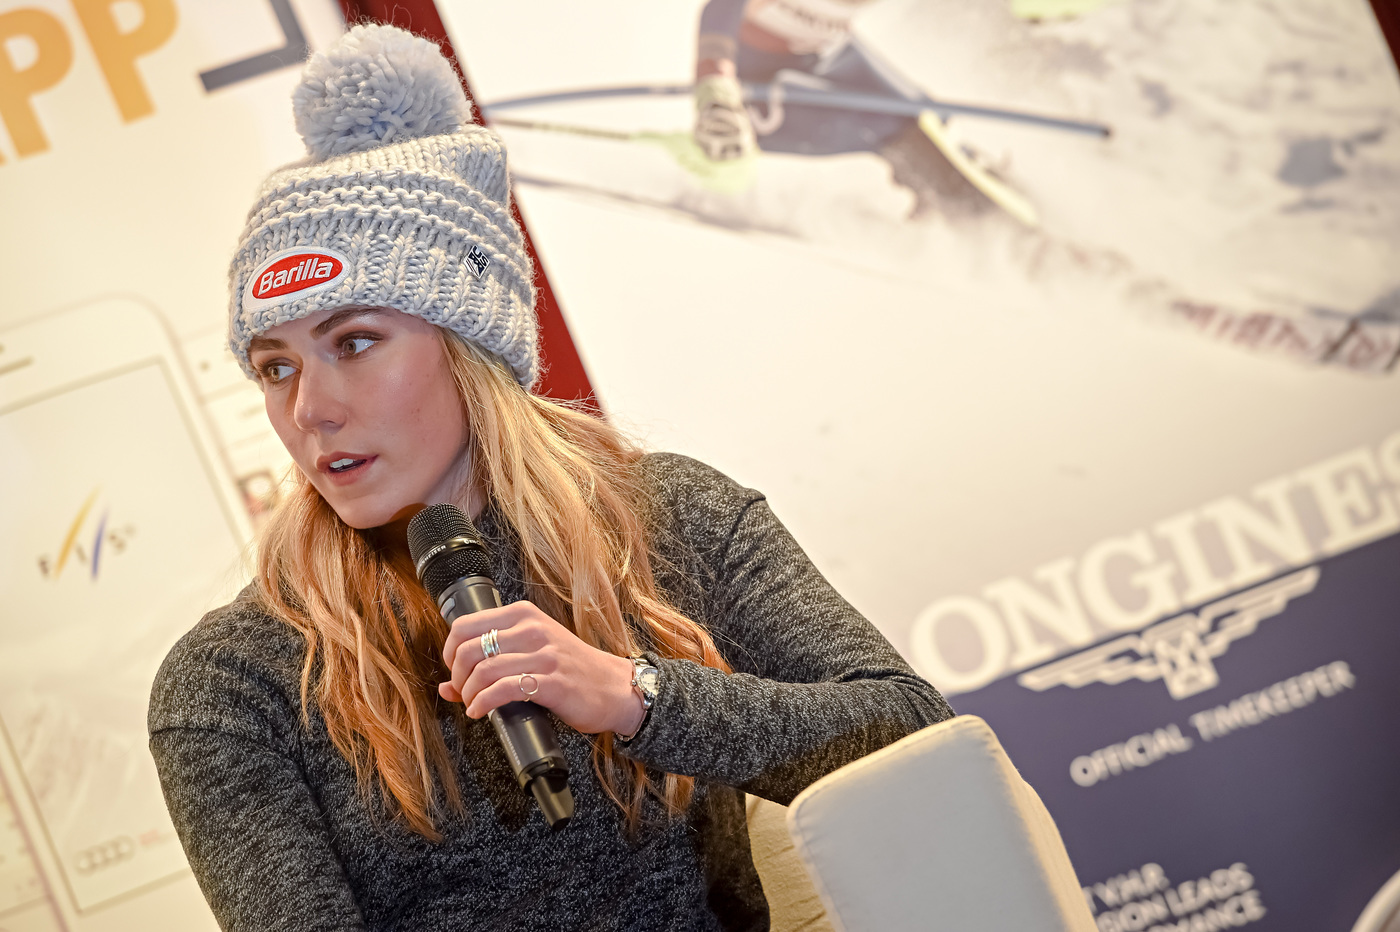 Longines Alpine Skiing Event: Longines' precision to serve the FIS World Cup with the new Conquest V.H.P. model 6